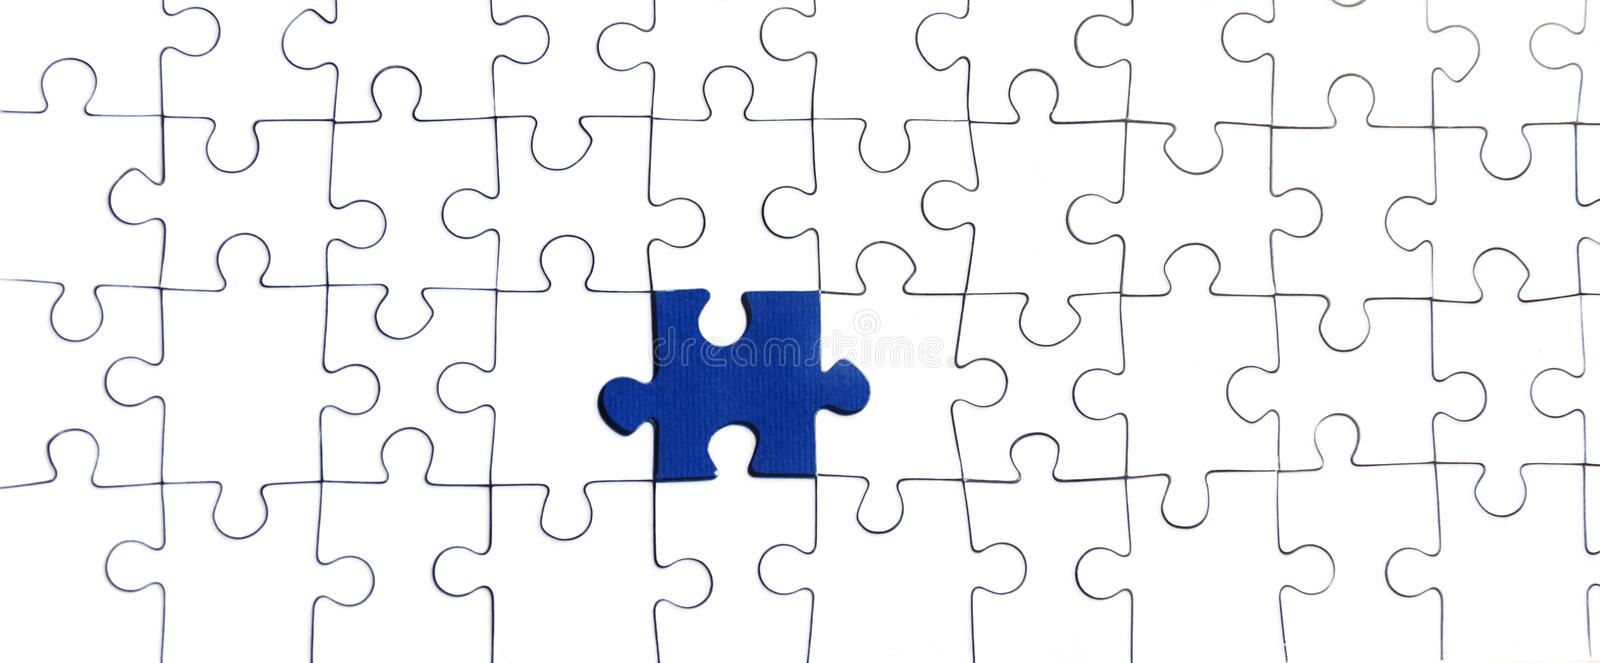 Background of white puzzle with bright blue puzzle center royalty free stock photo